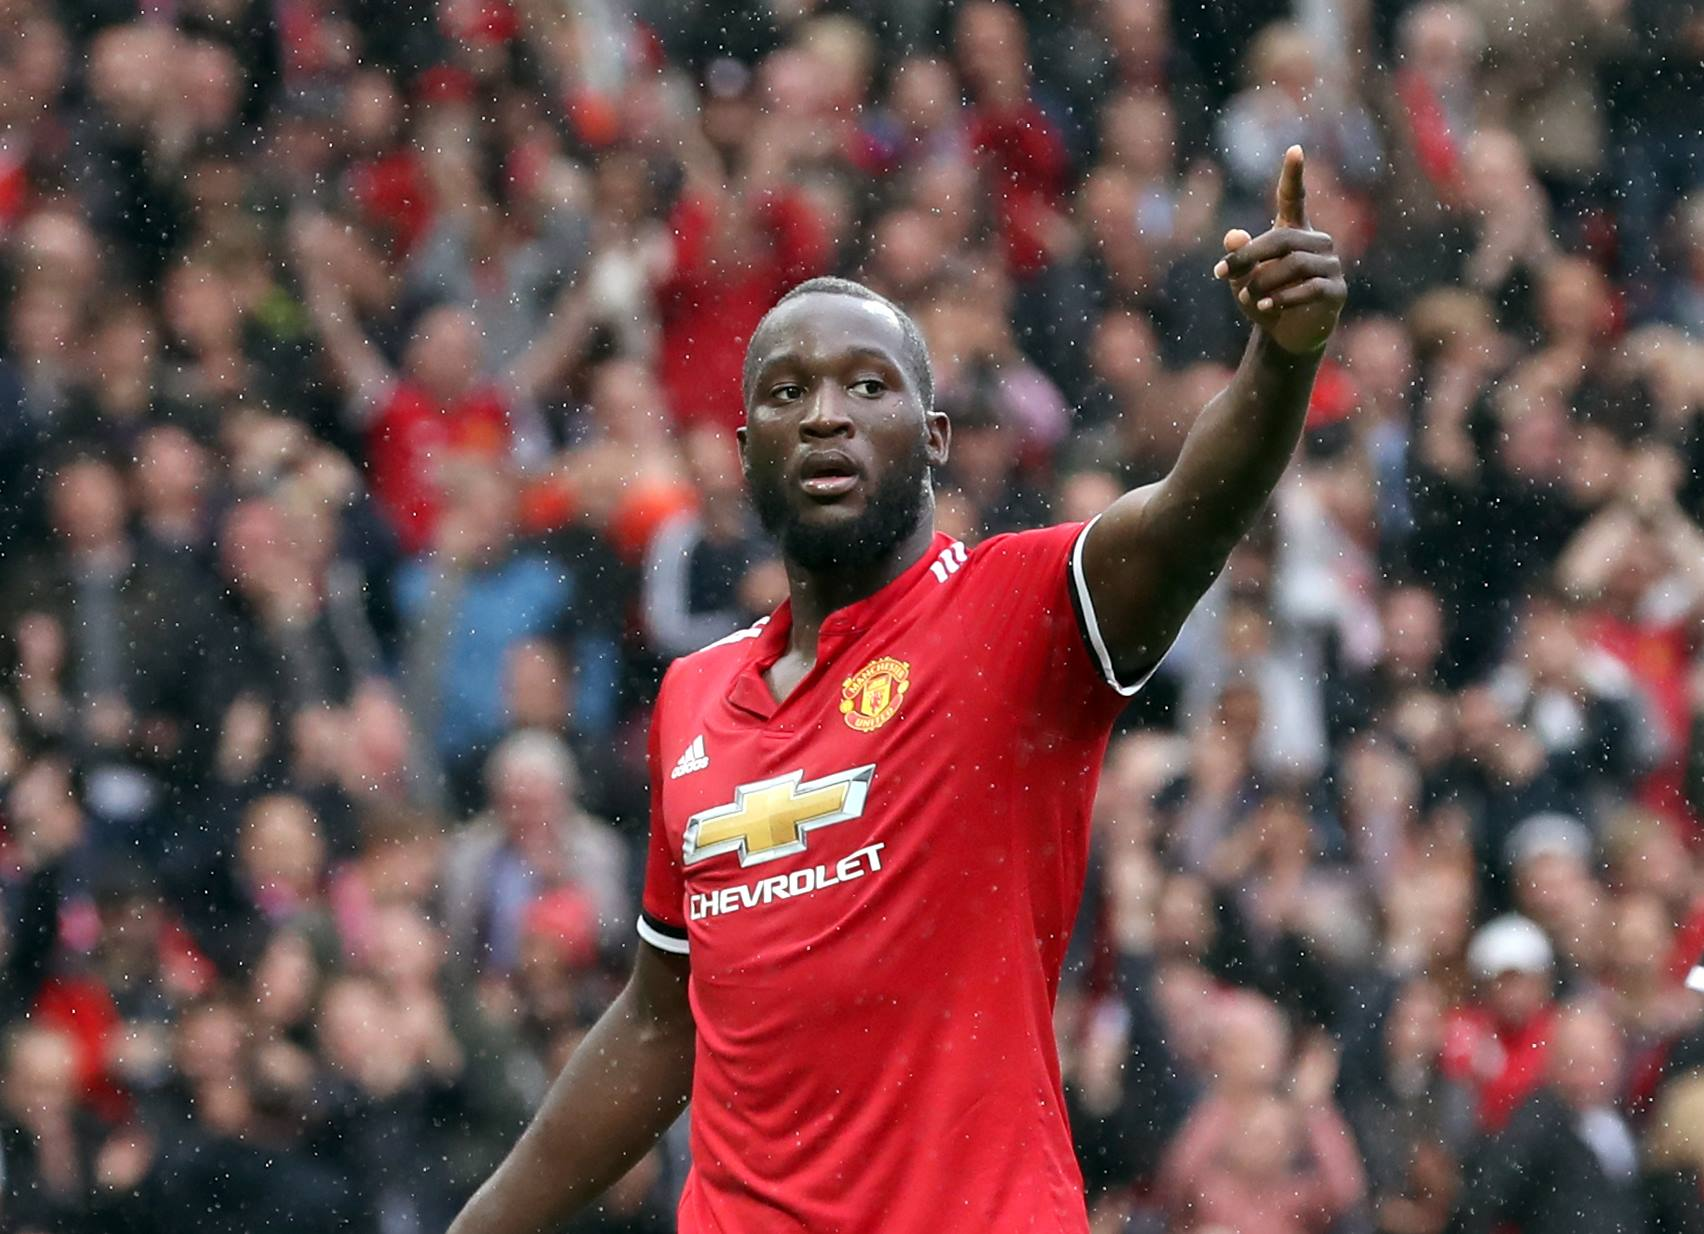 United's reliance on Romelu Lukaku revealed